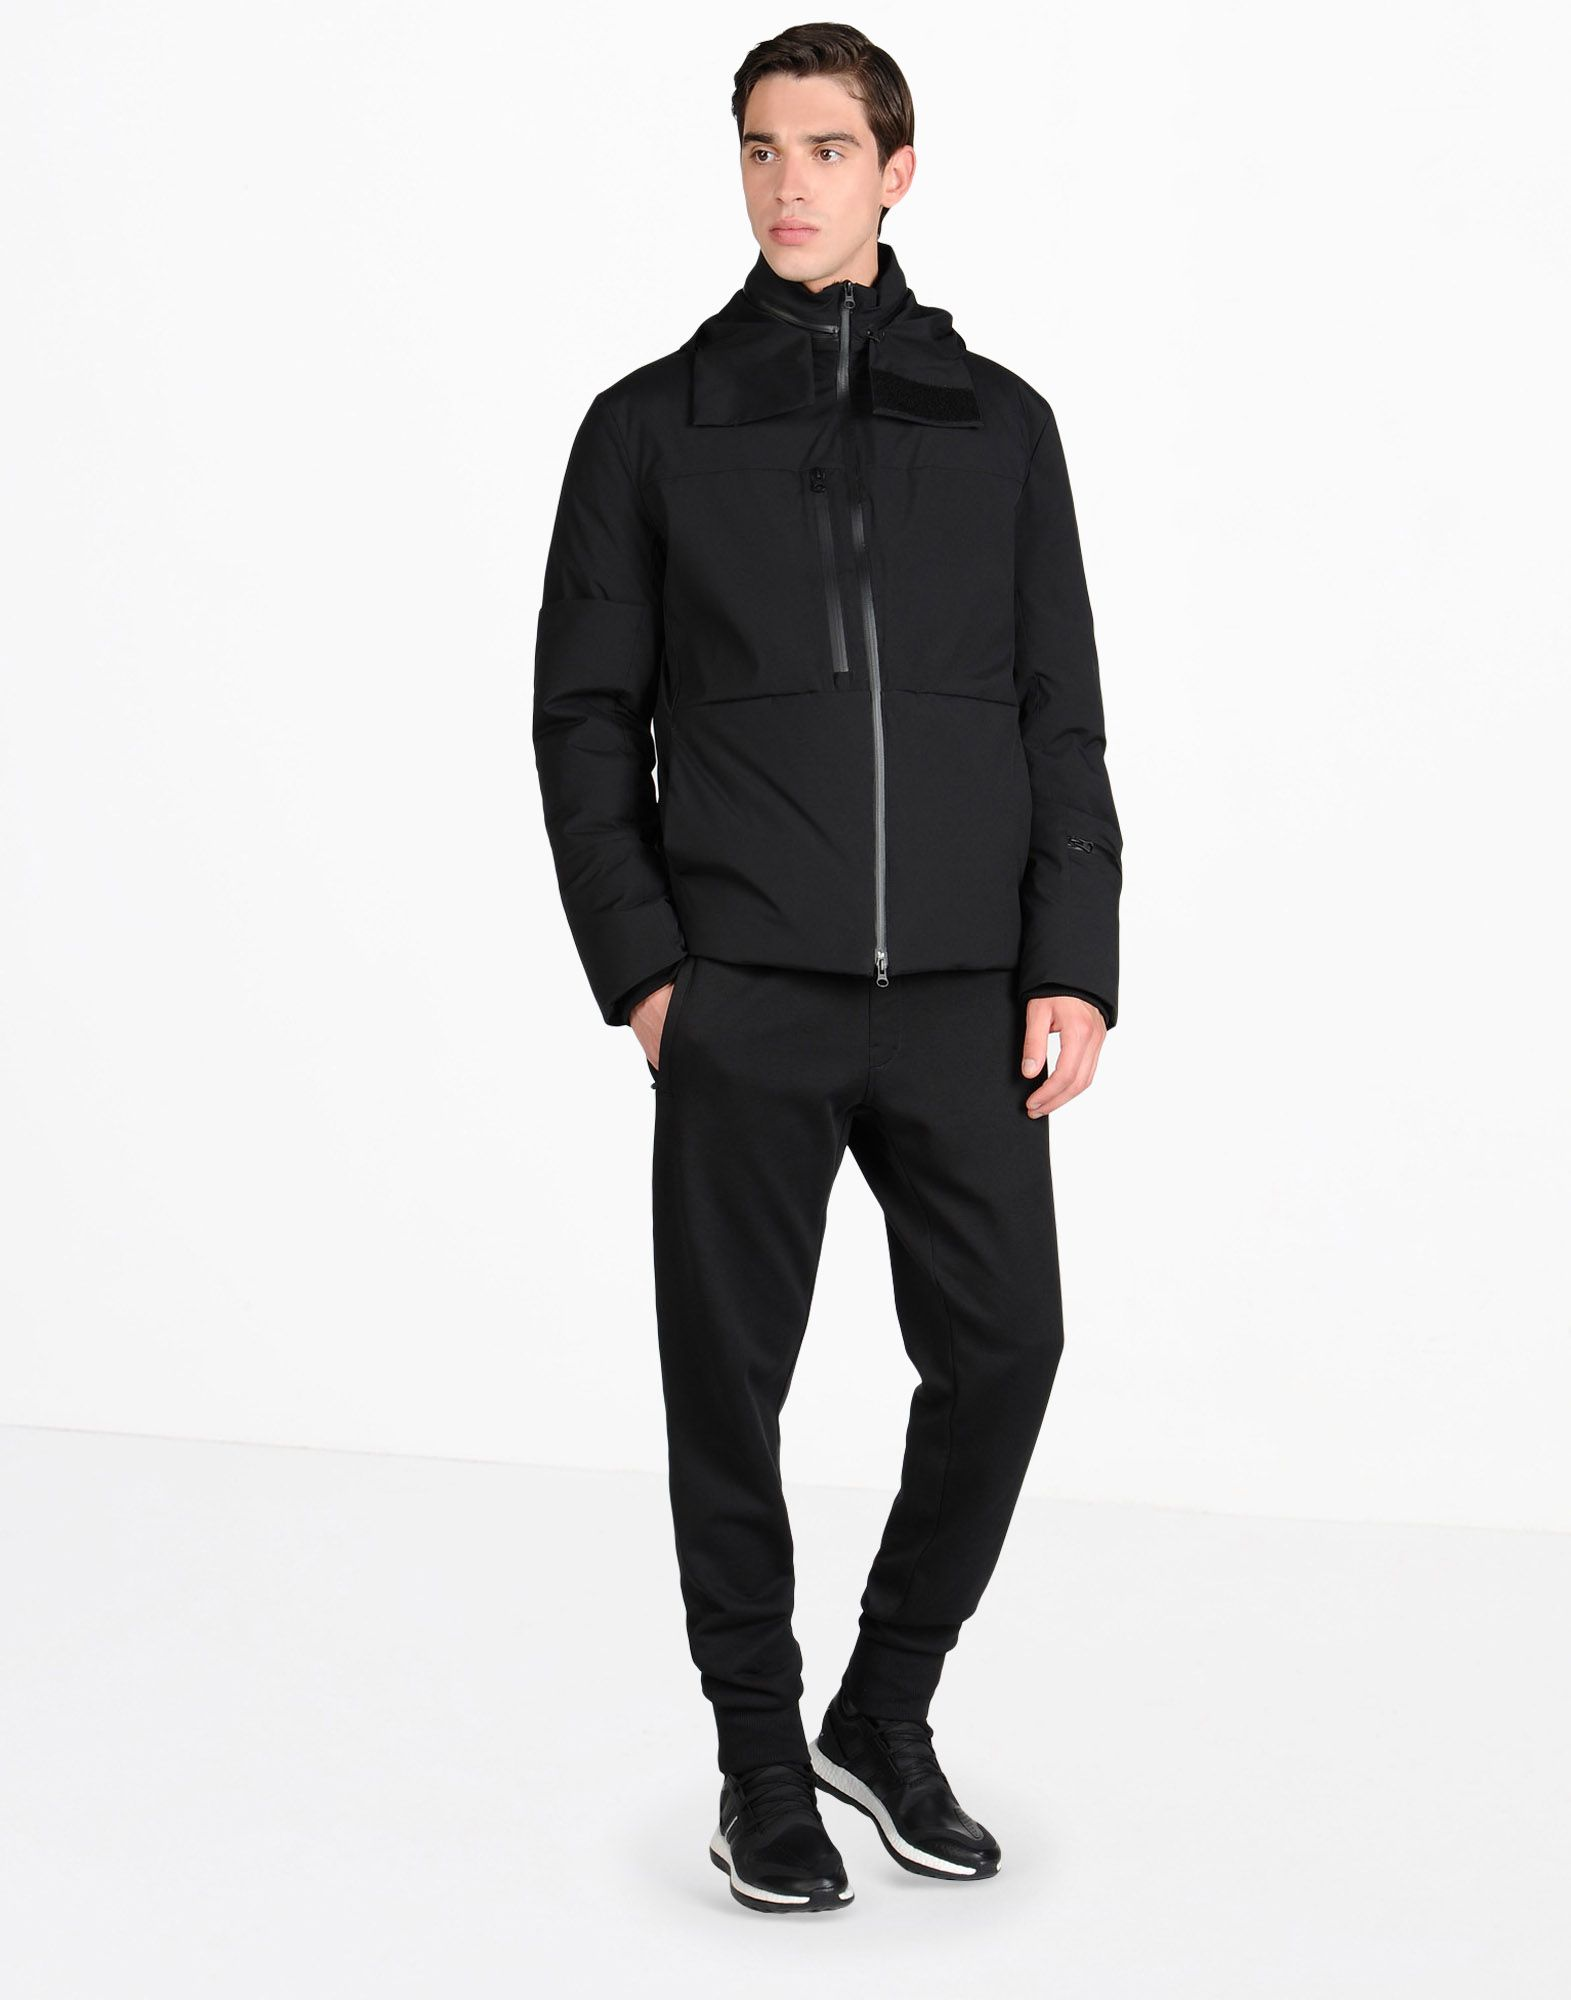 Y 3 MATTE DOWN JACKET Jackets for Men | Adidas Y-3 Official Store